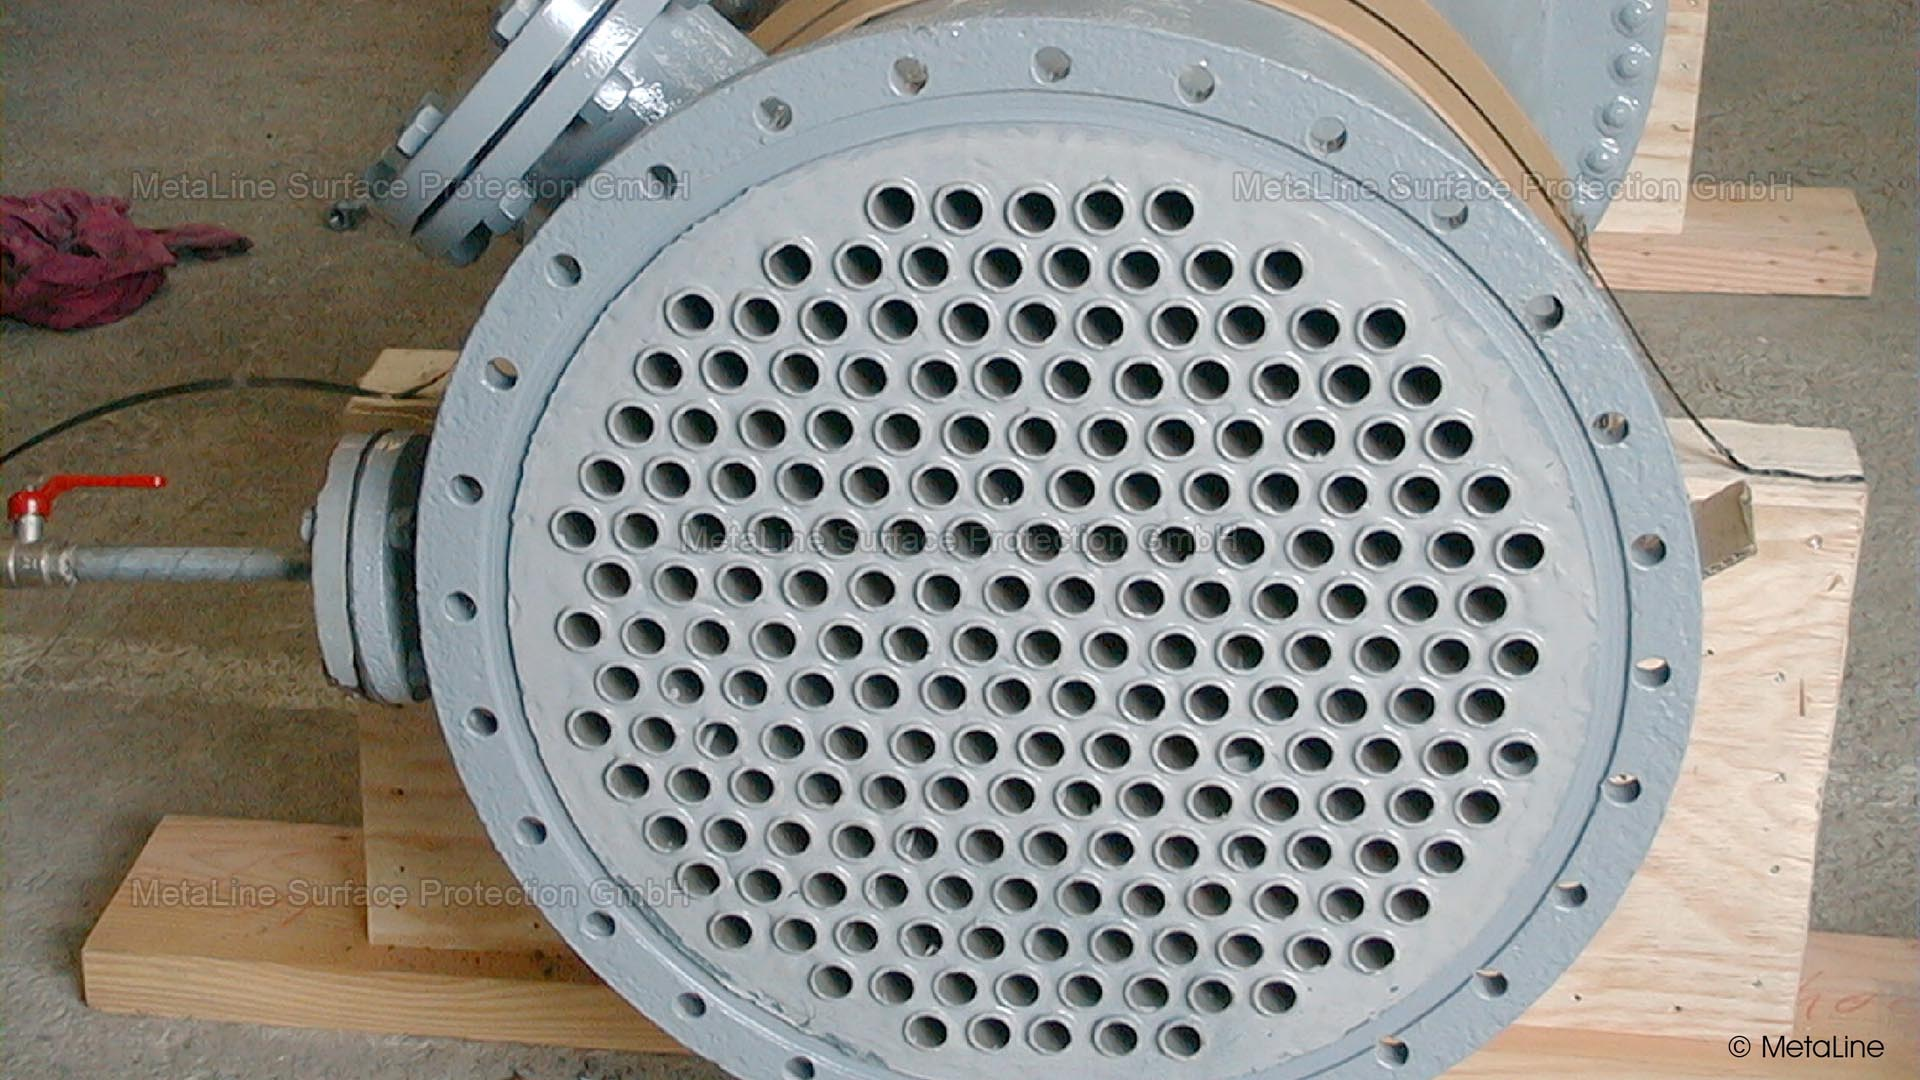 <!-- START: ConditionalContent --> heat exchangers, shell and tube heat exchangers, head plates, end plates, leaking, leaks, chemical attack, wear, erosion, corrosion <!-- END: ConditionalContent -->   <!-- START: ConditionalContent --><!-- END: ConditionalContent -->   <!-- START: ConditionalContent --><!-- END: ConditionalContent --> <!-- START: ConditionalContent --><!-- END: ConditionalContent -->